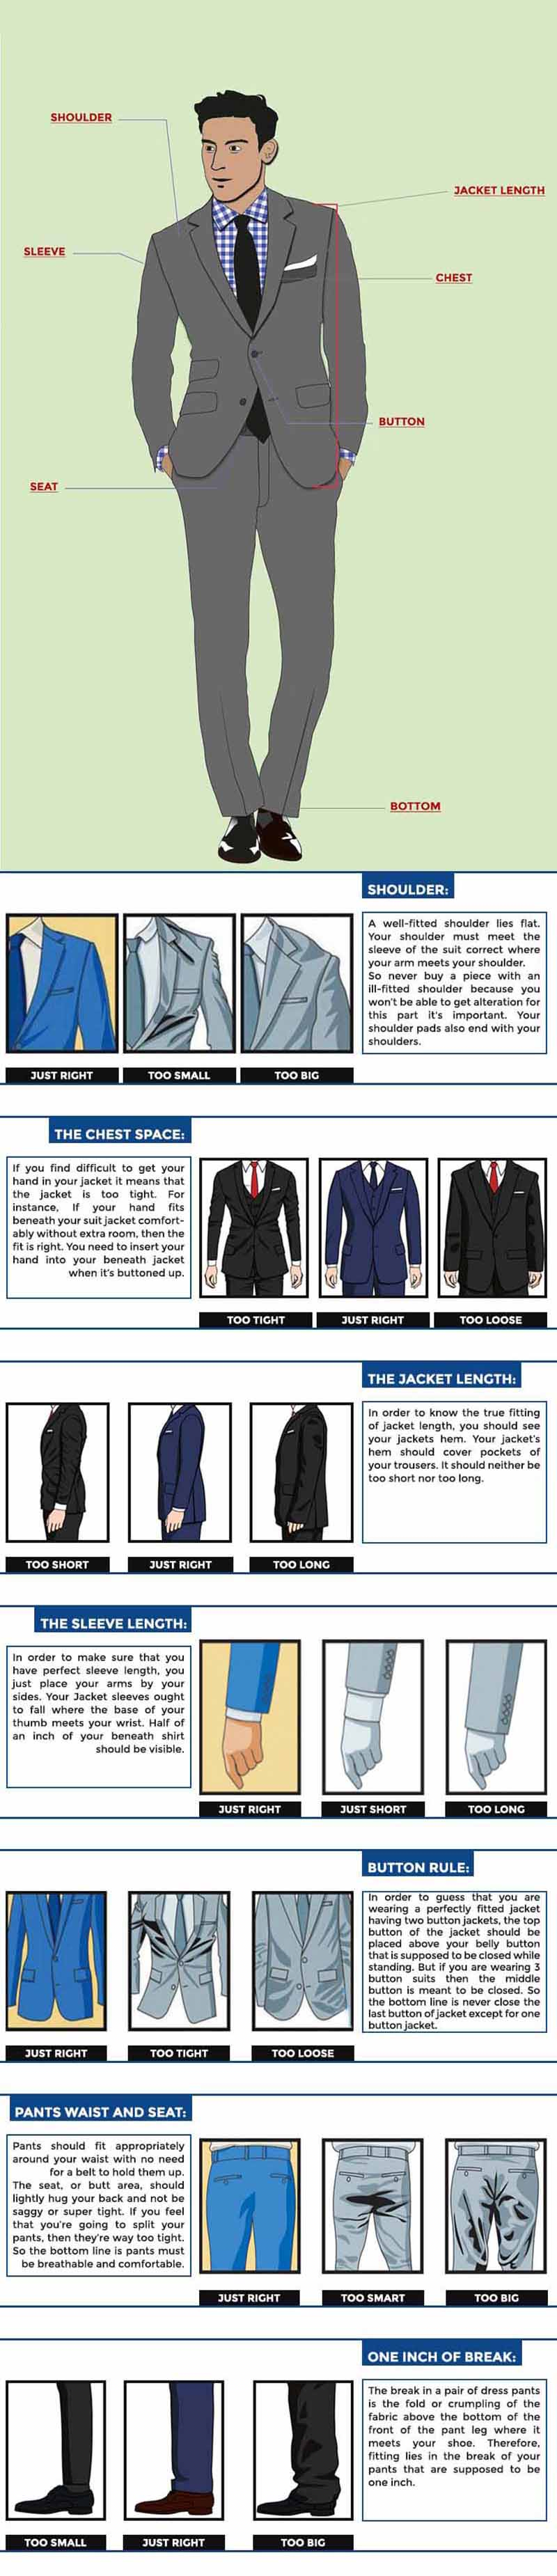 The Stylish Man's Guide to the Perfect Fitting Suit - Infographic